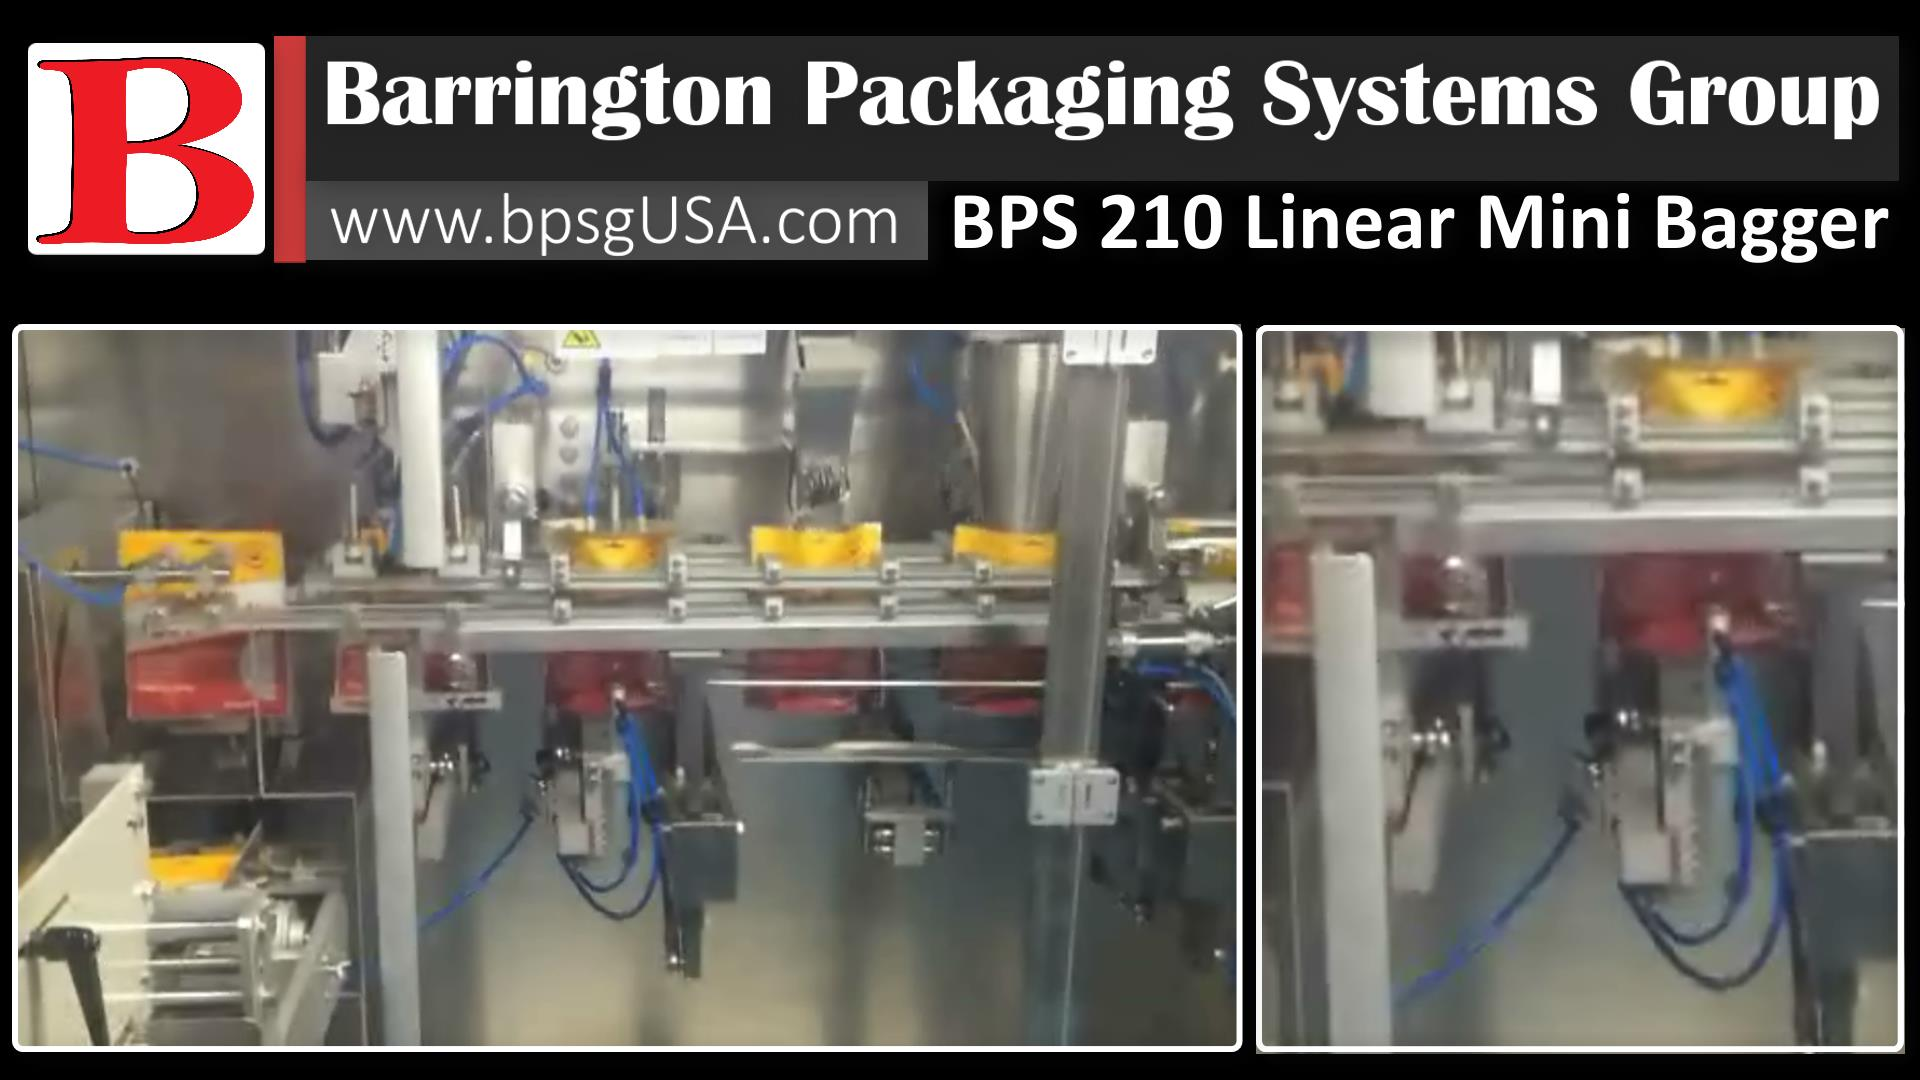 The BPS Mini Bagger 210L is a Small Footprint Large Output Linear Mini Bagger Packaging Equipment System and is the economical way to automate Scaling Filling and Sealing for your Preformed Bagsand Stand-up Pouches.